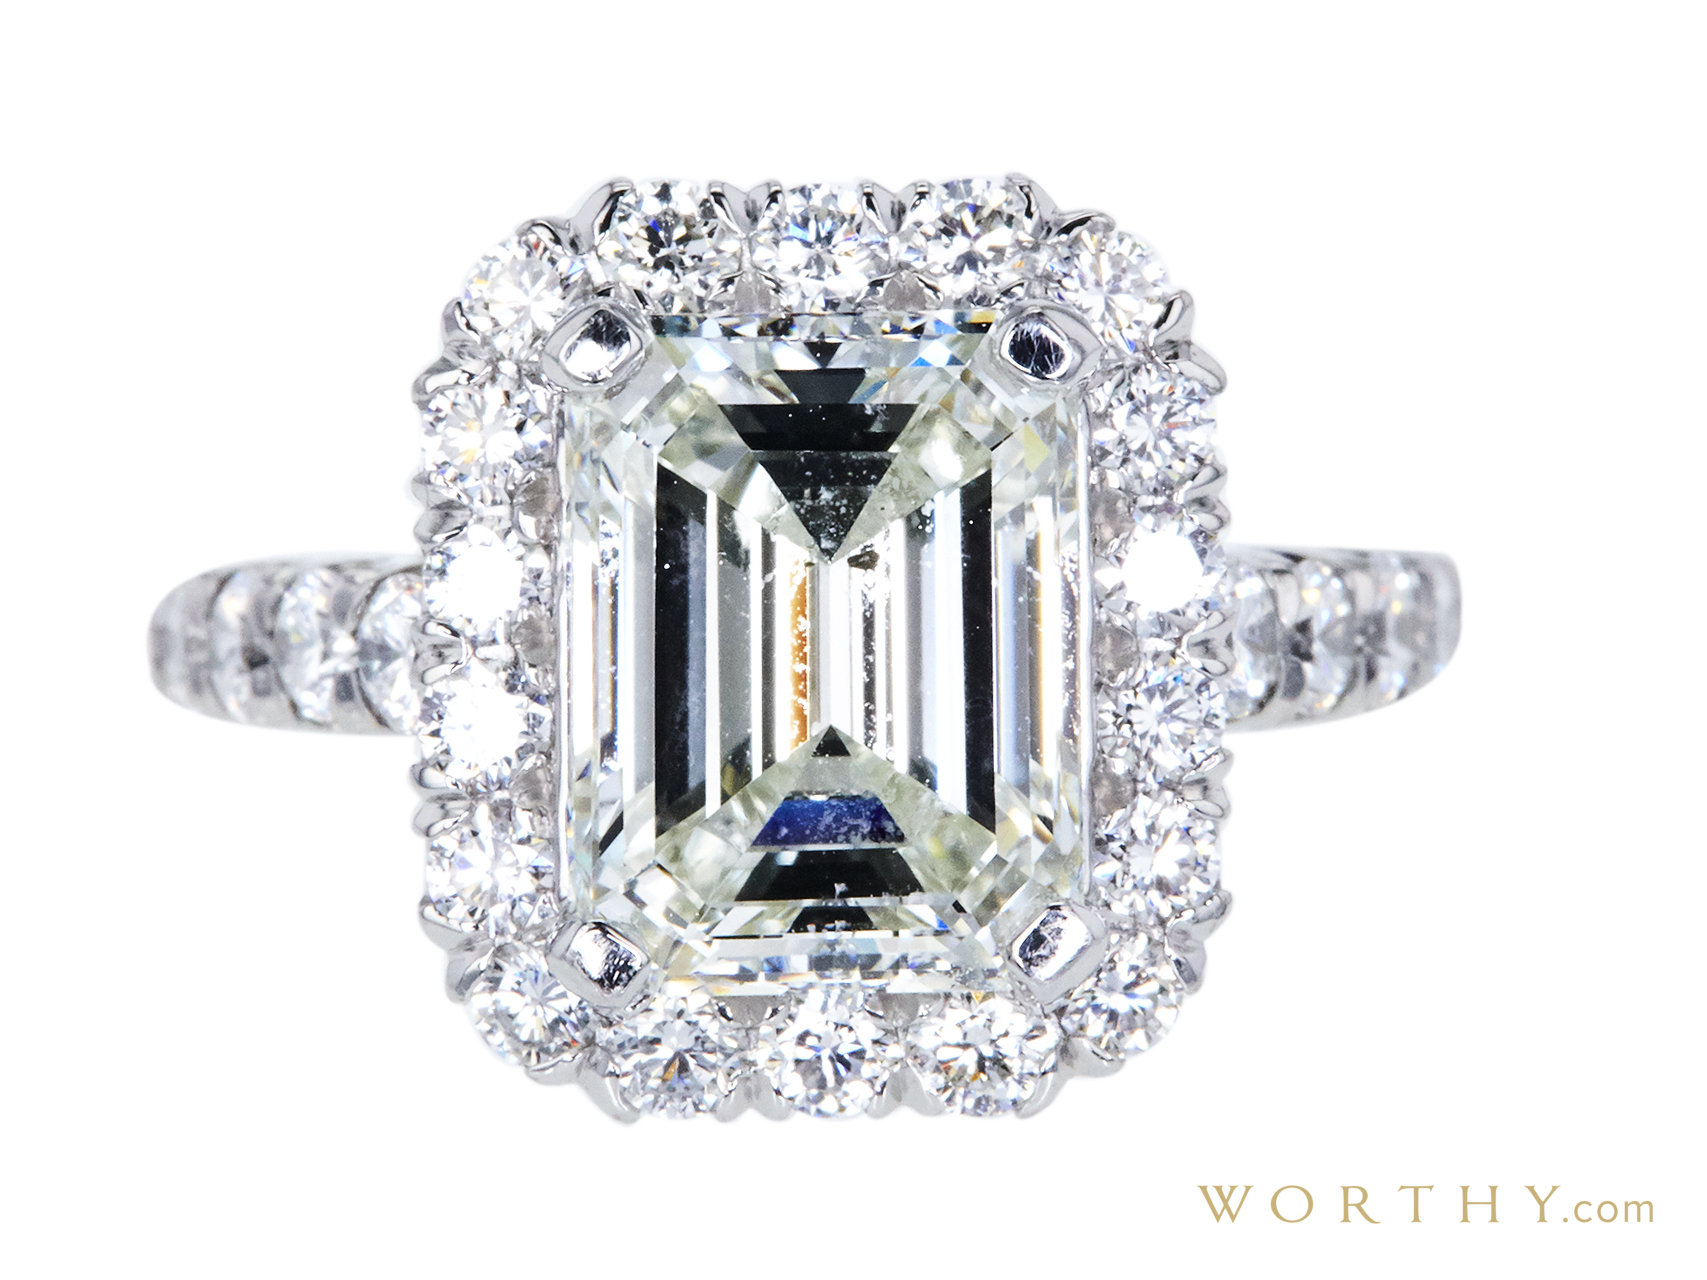 6215997c259f95 GIA 4.01 CT Emerald Cut Halo Ring Sold at Auction for $14083